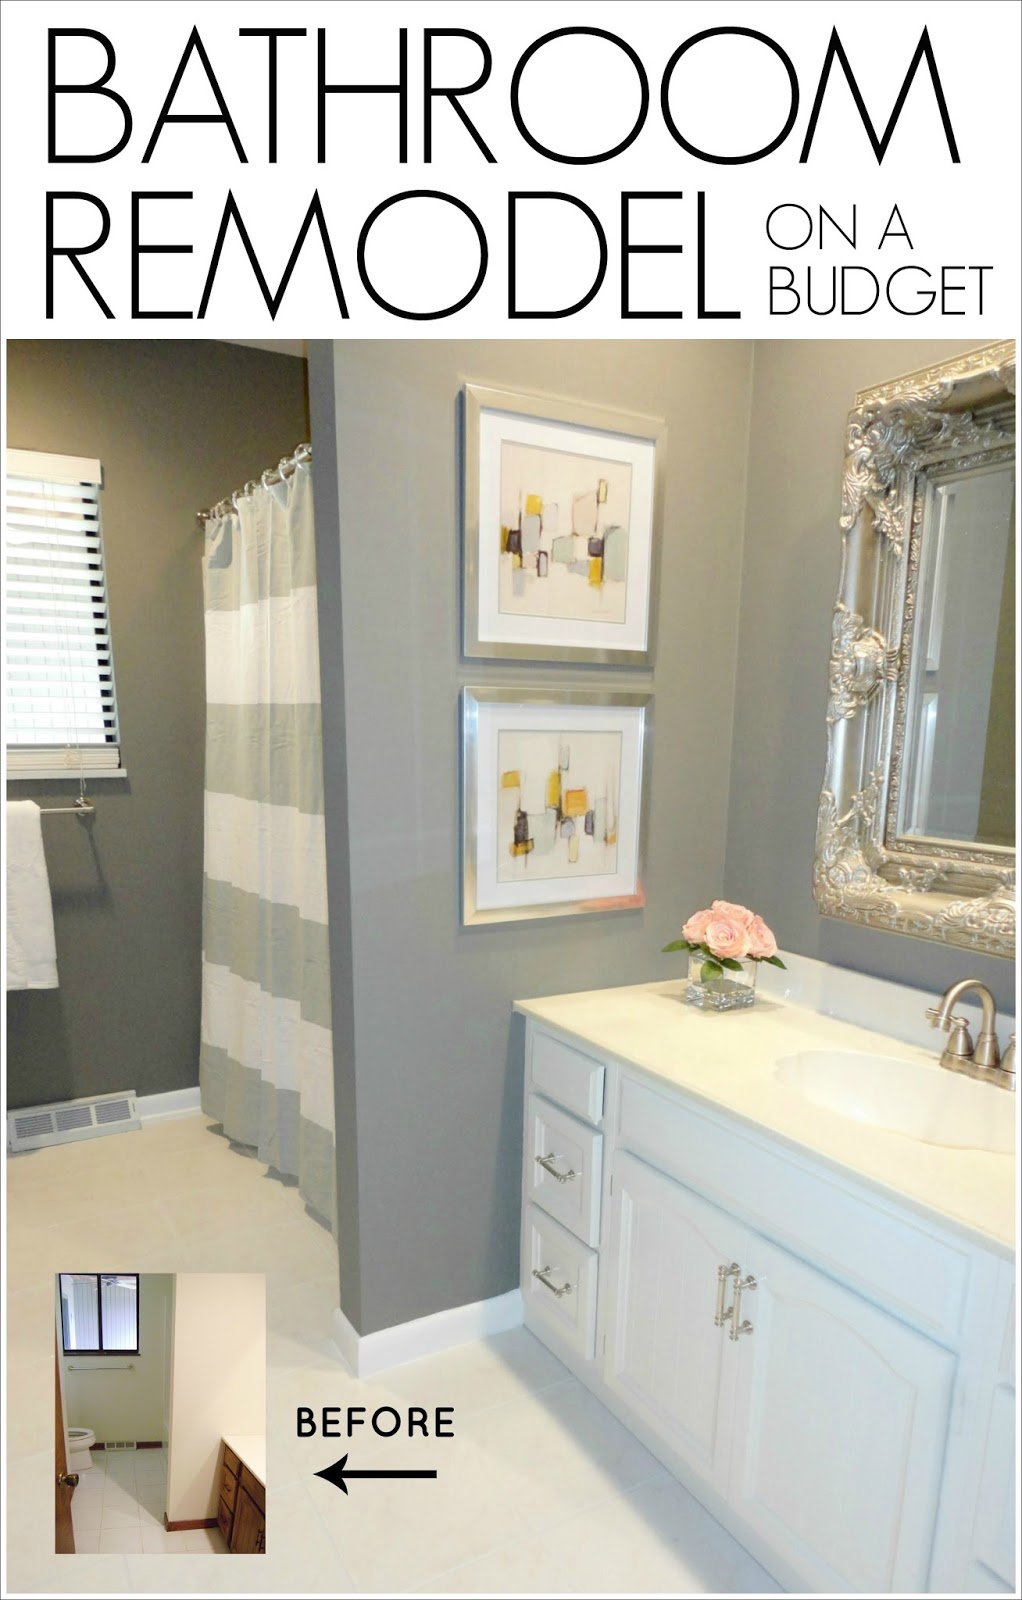 Glamorous Livelovediy: Diy Bathroom Remodel On A Budget with Inexpensive Bathroom Remodel